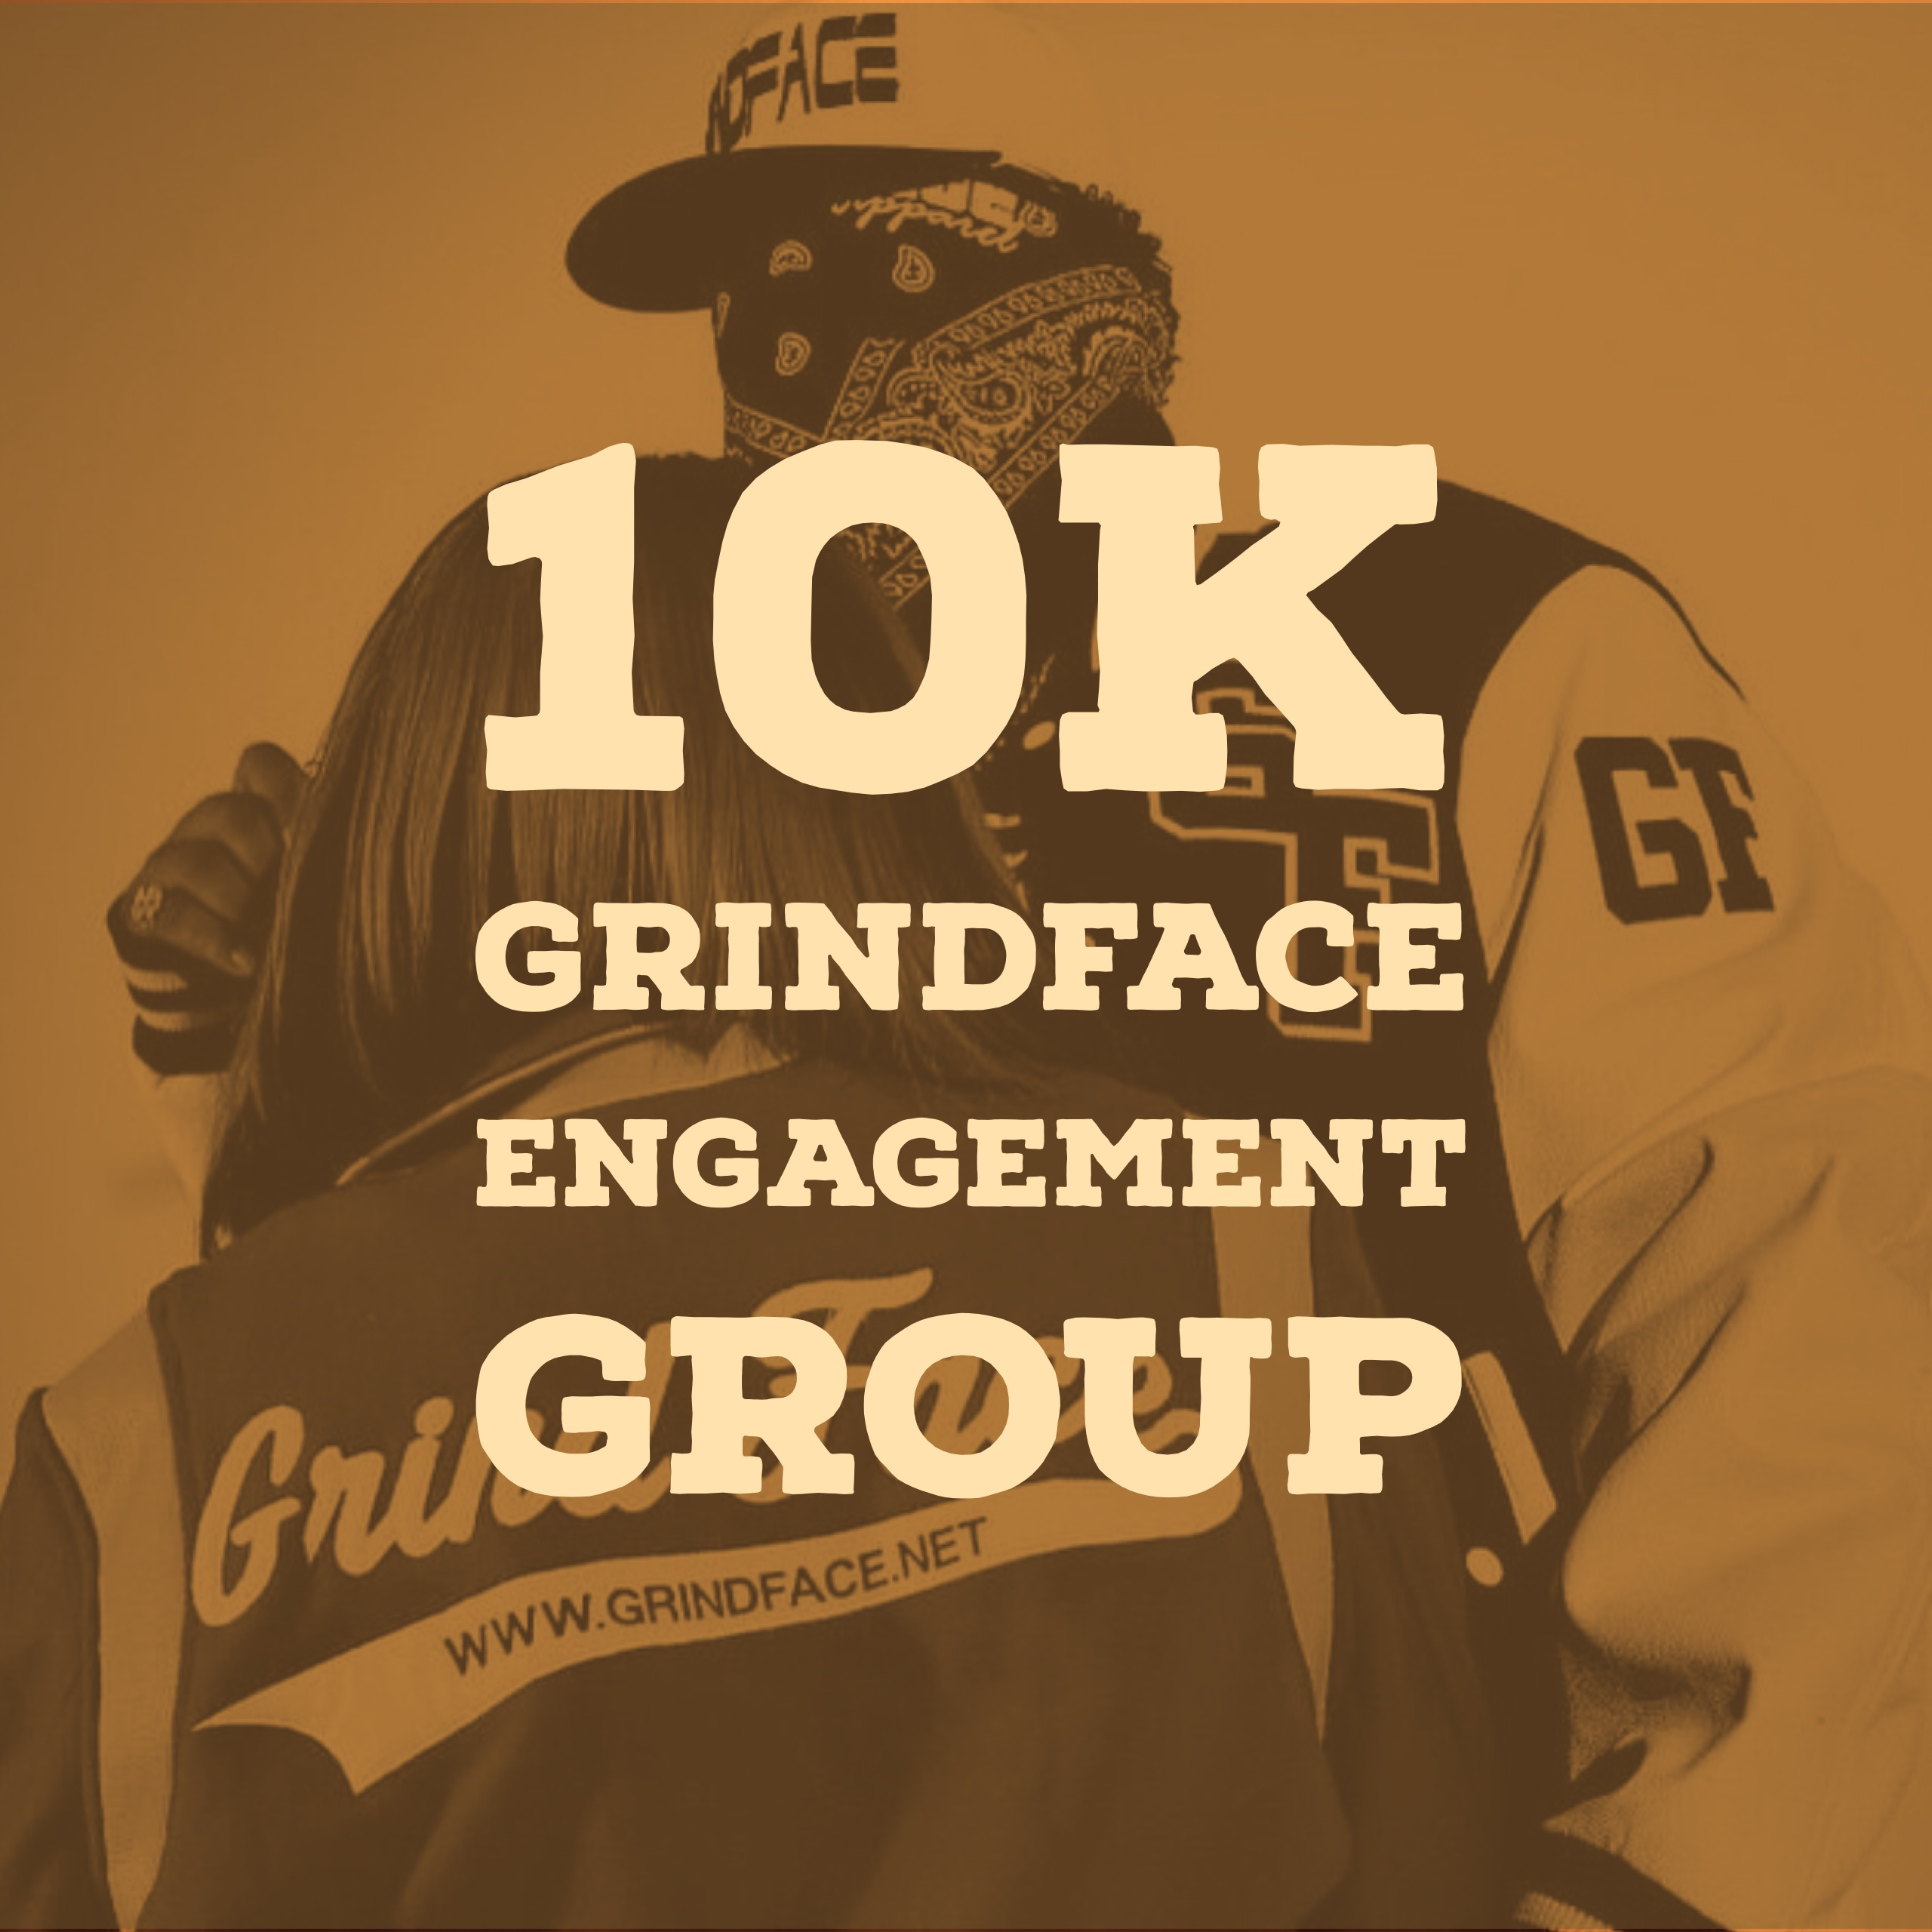 GrindFace Engagement Group